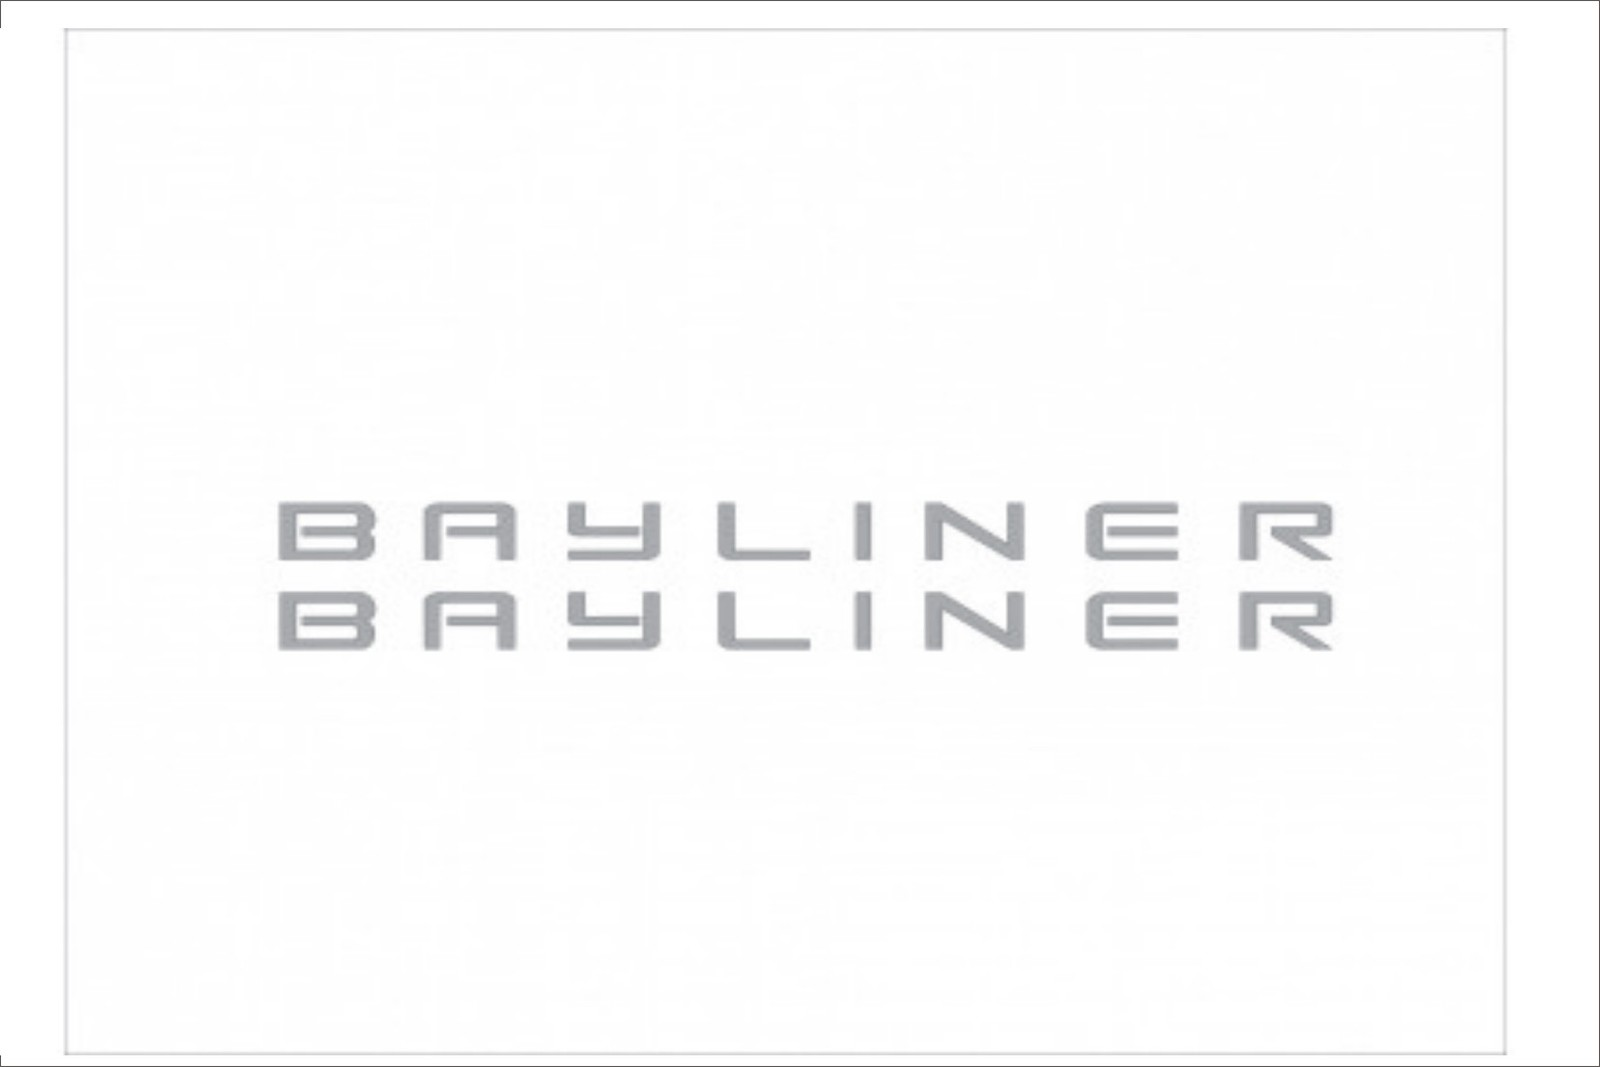 BAYLINER - Boat decal set, reproduction and 50 similar items